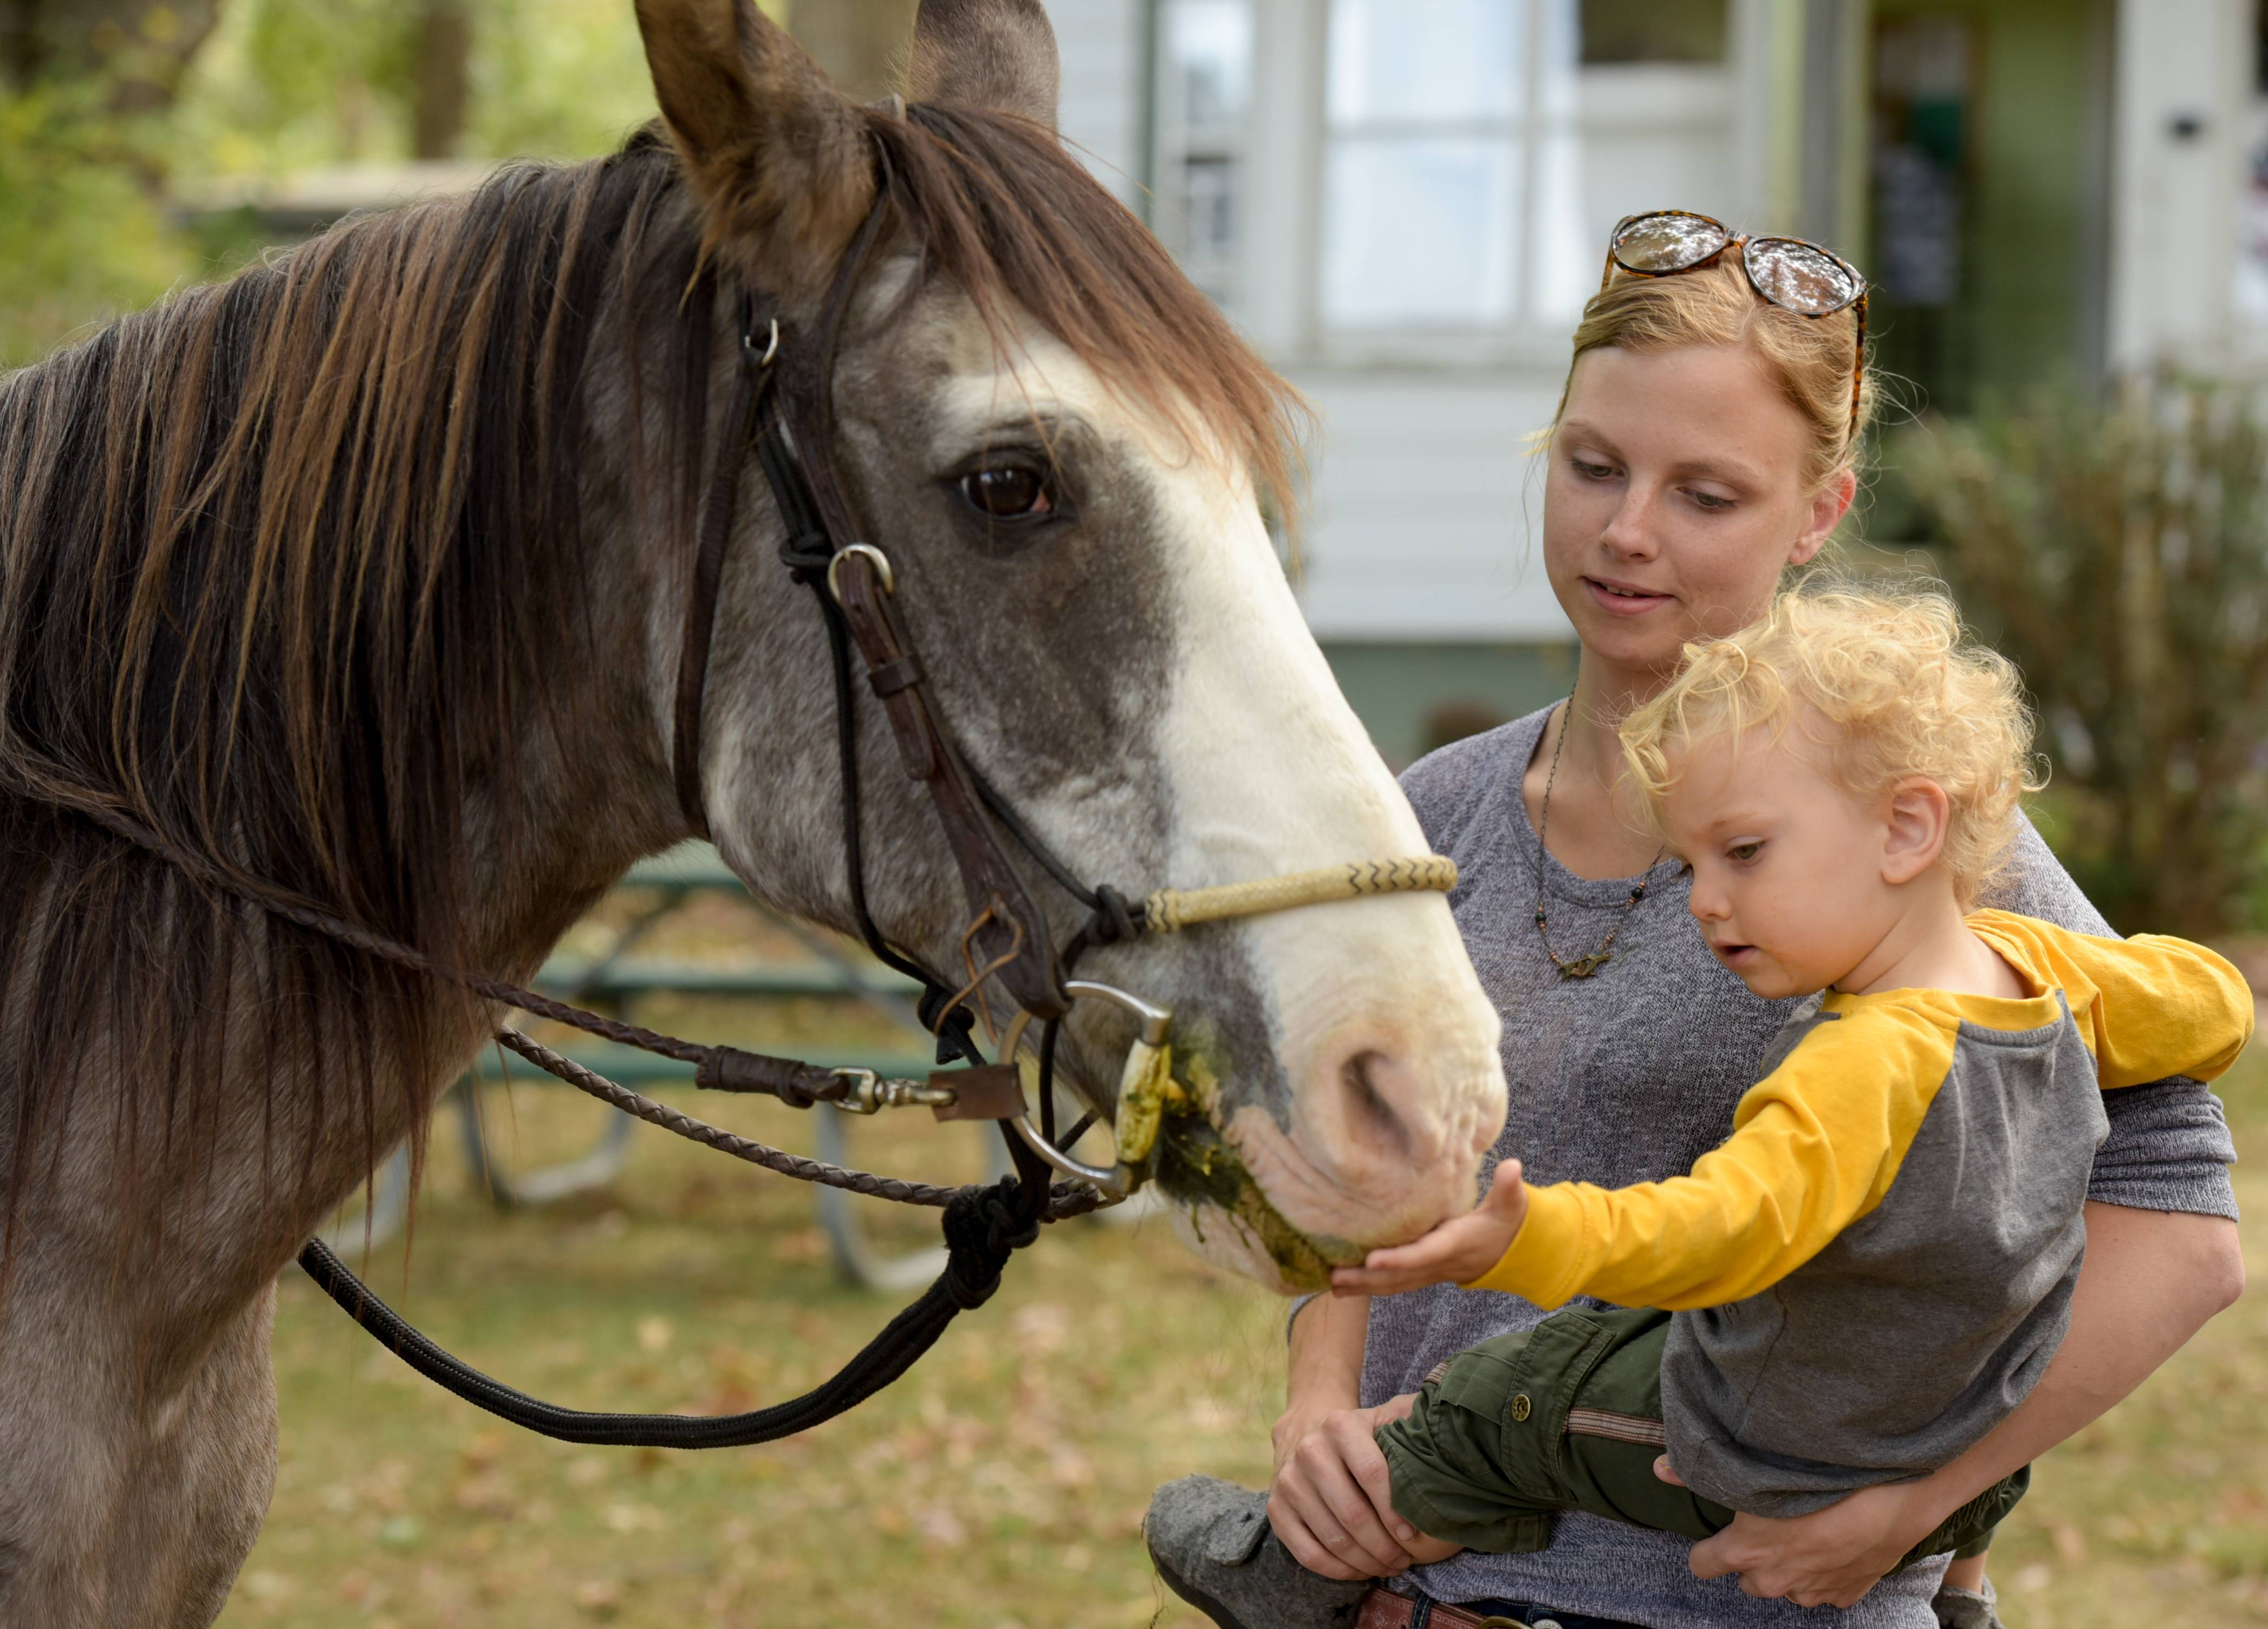 Meghan Prohaska and her son Rowan, 2, of Elburn pet Cougar of the Kane County Forest Preserve Mounted Rangers during the Fox Valley Wildlife Center open house Sunday in Elburn.